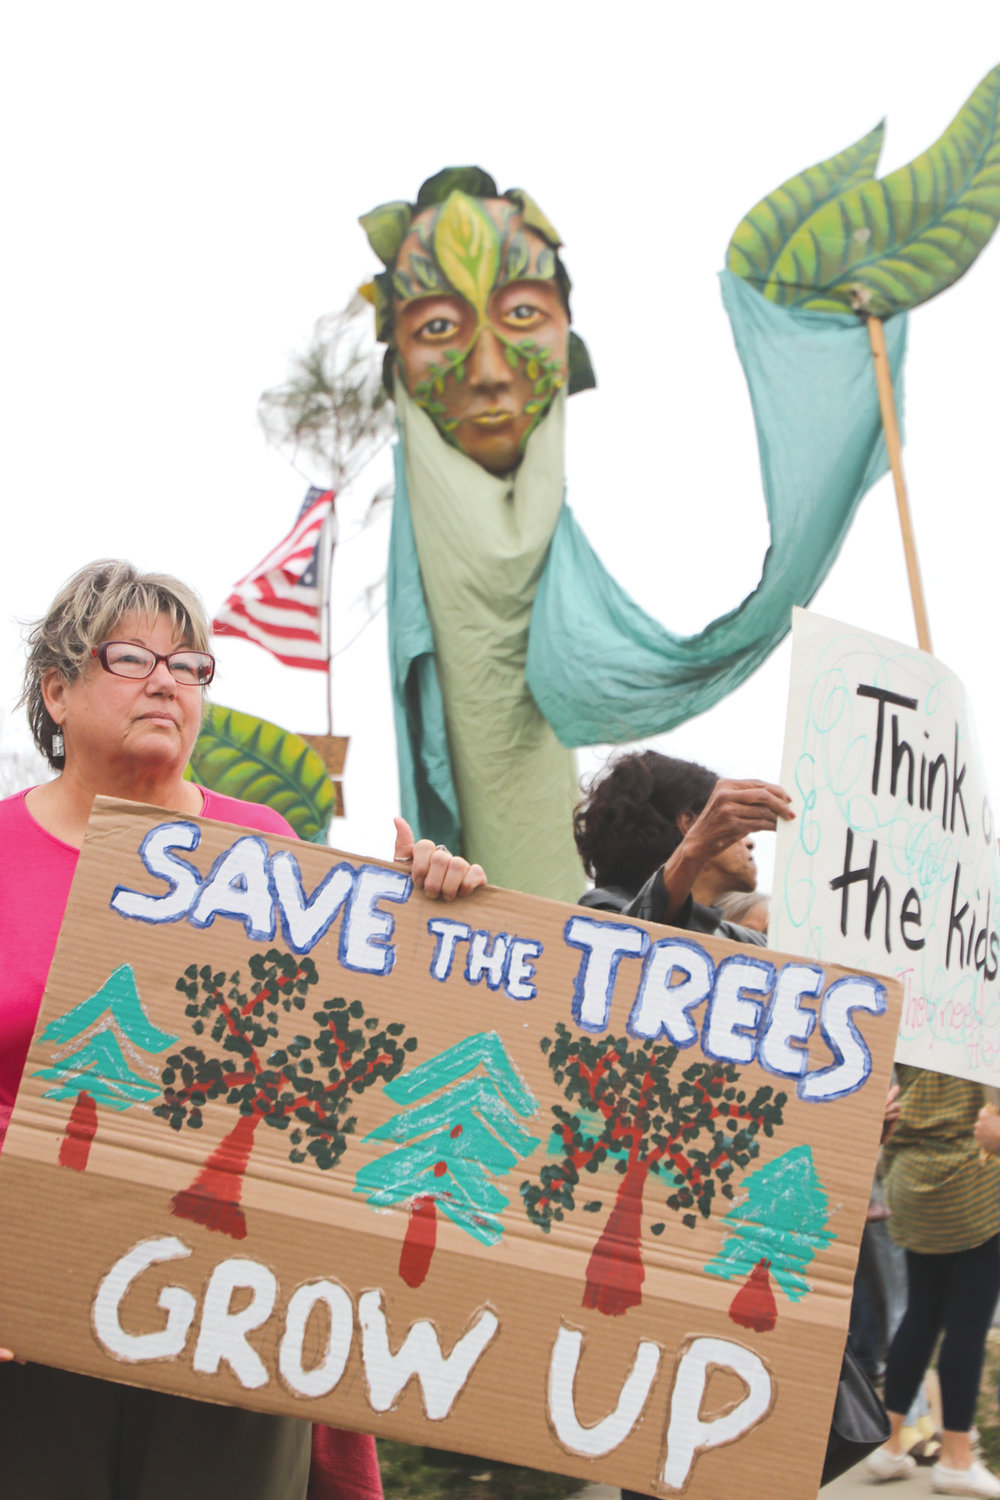 Megan Lynch, who has lived in Chatham County since the 80s, attends the Procession of Trees protest. 'I remember how green and lush (Chatham County) was,' she said. 'And I am an environmentalist, so I know the importance of trees to our everyday life.'